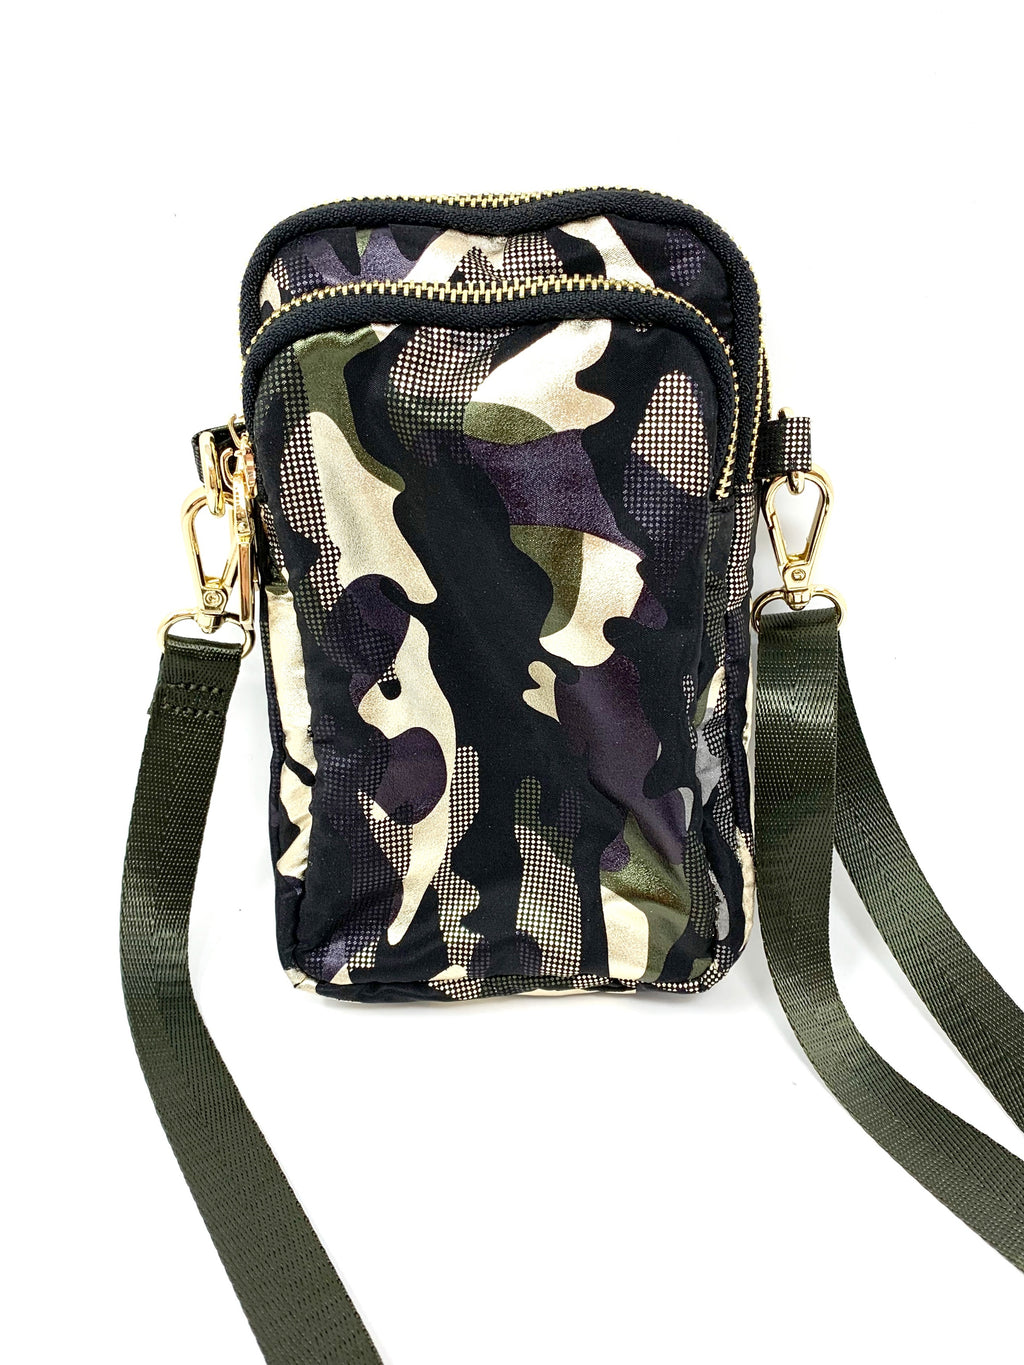 Cell Bag in Metallic Camo